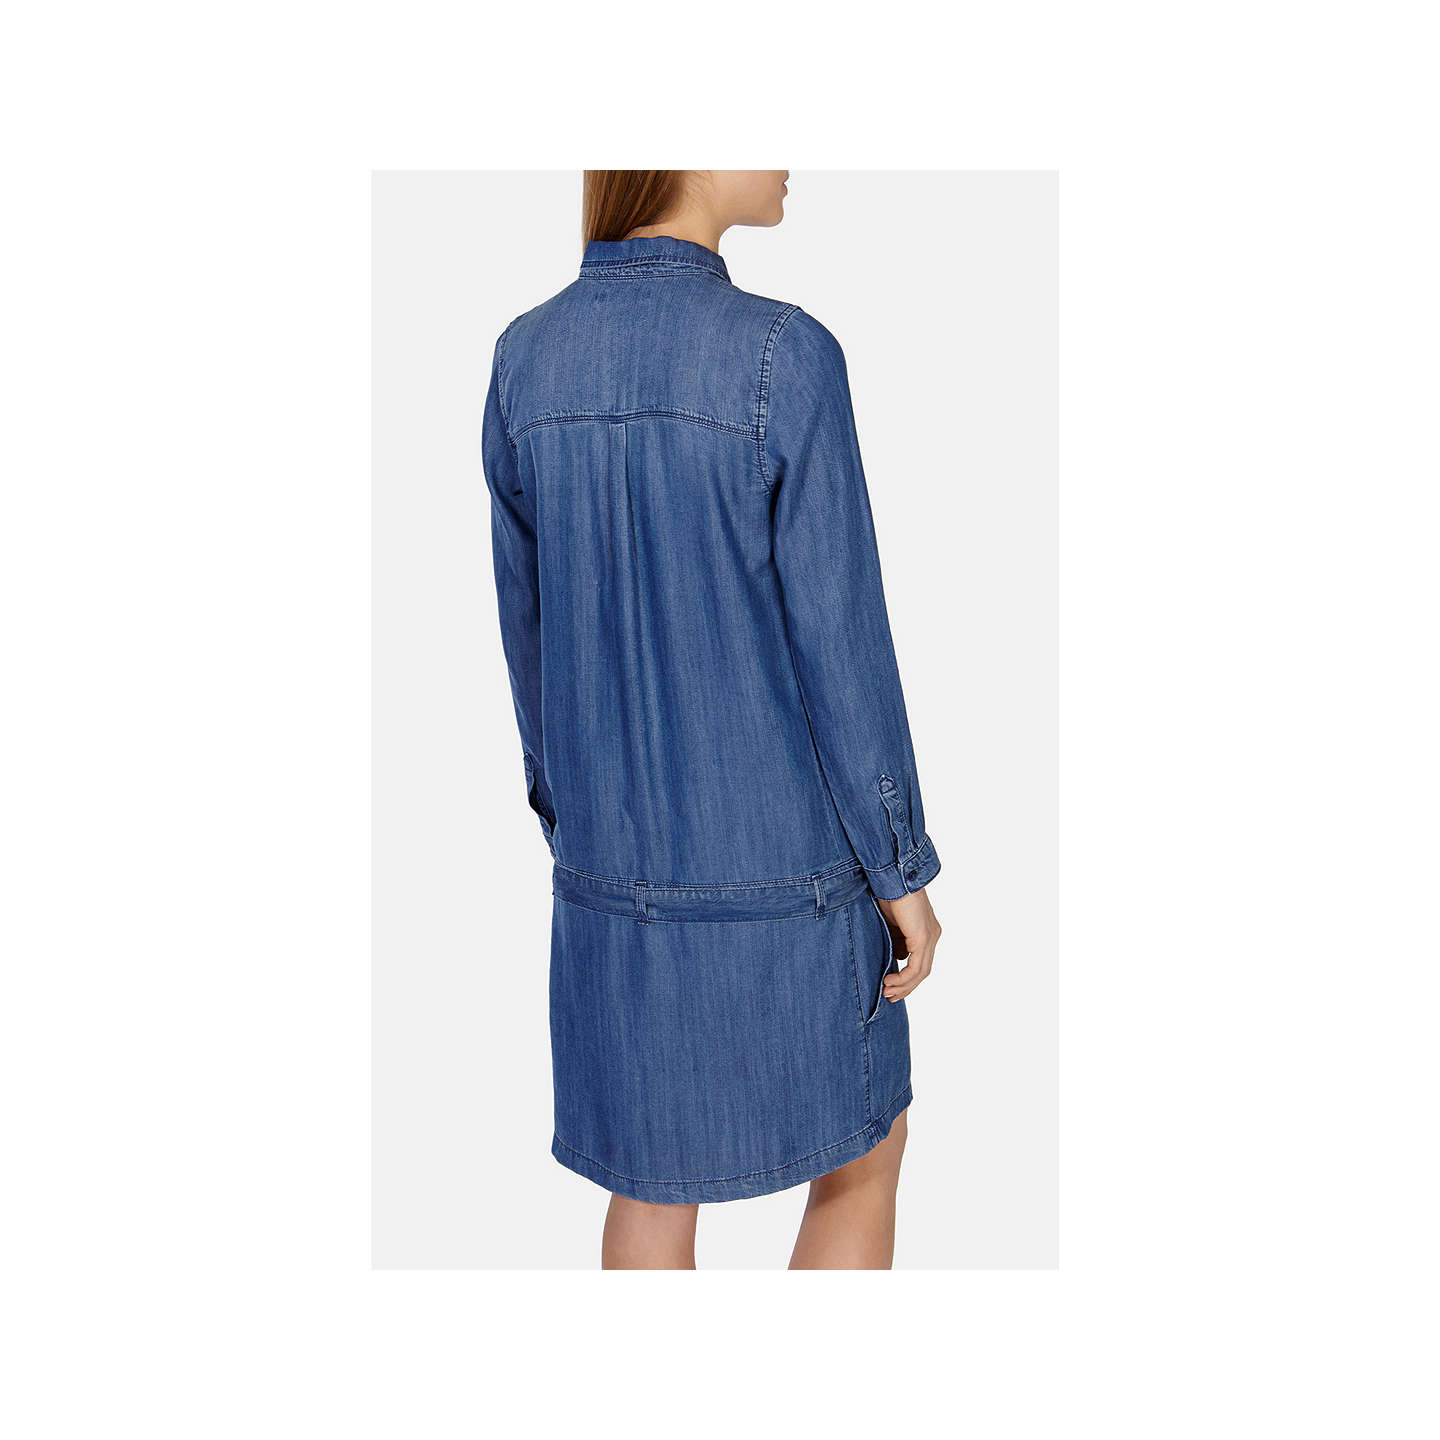 BuyKaren Millen Soft Denim Shirt Dress, Dark Blue, 6 Online at johnlewis.com